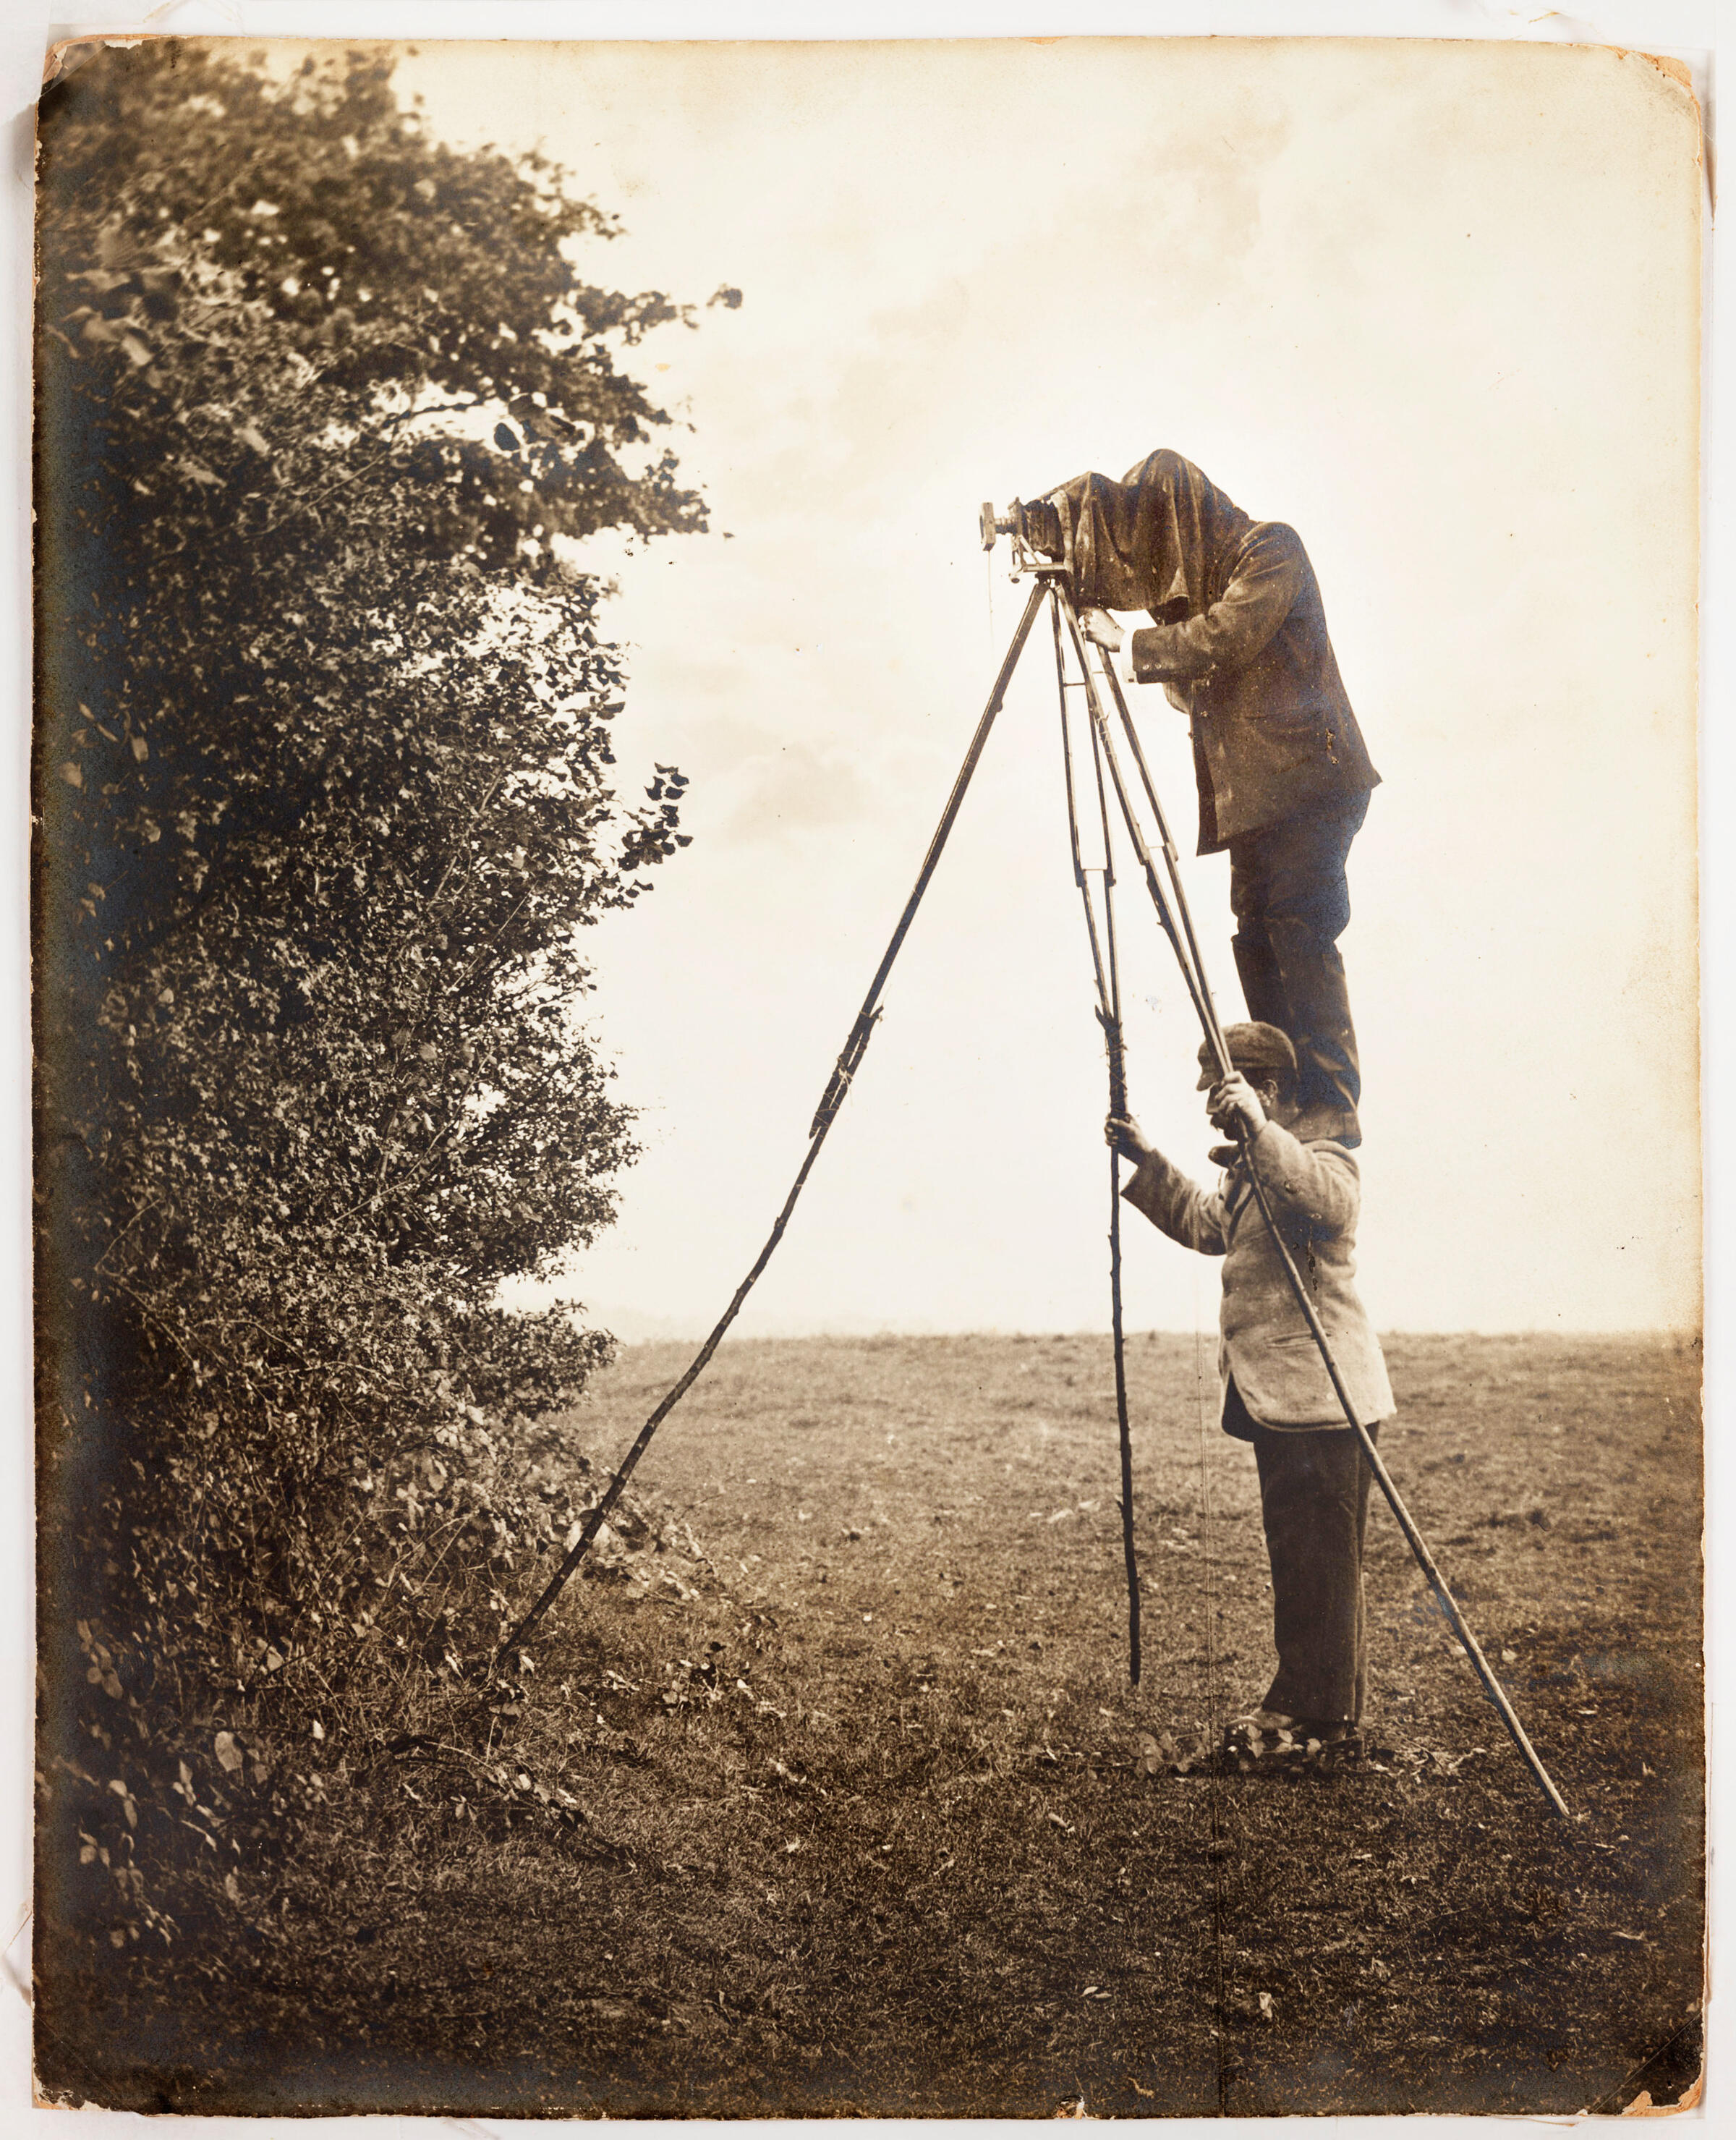 1900—Any wildlife photographer working today stands on the Kearton brothers' shoulders. Richard and Cherry Kearton/Royal Photographic Society/SSPL/Getty Images